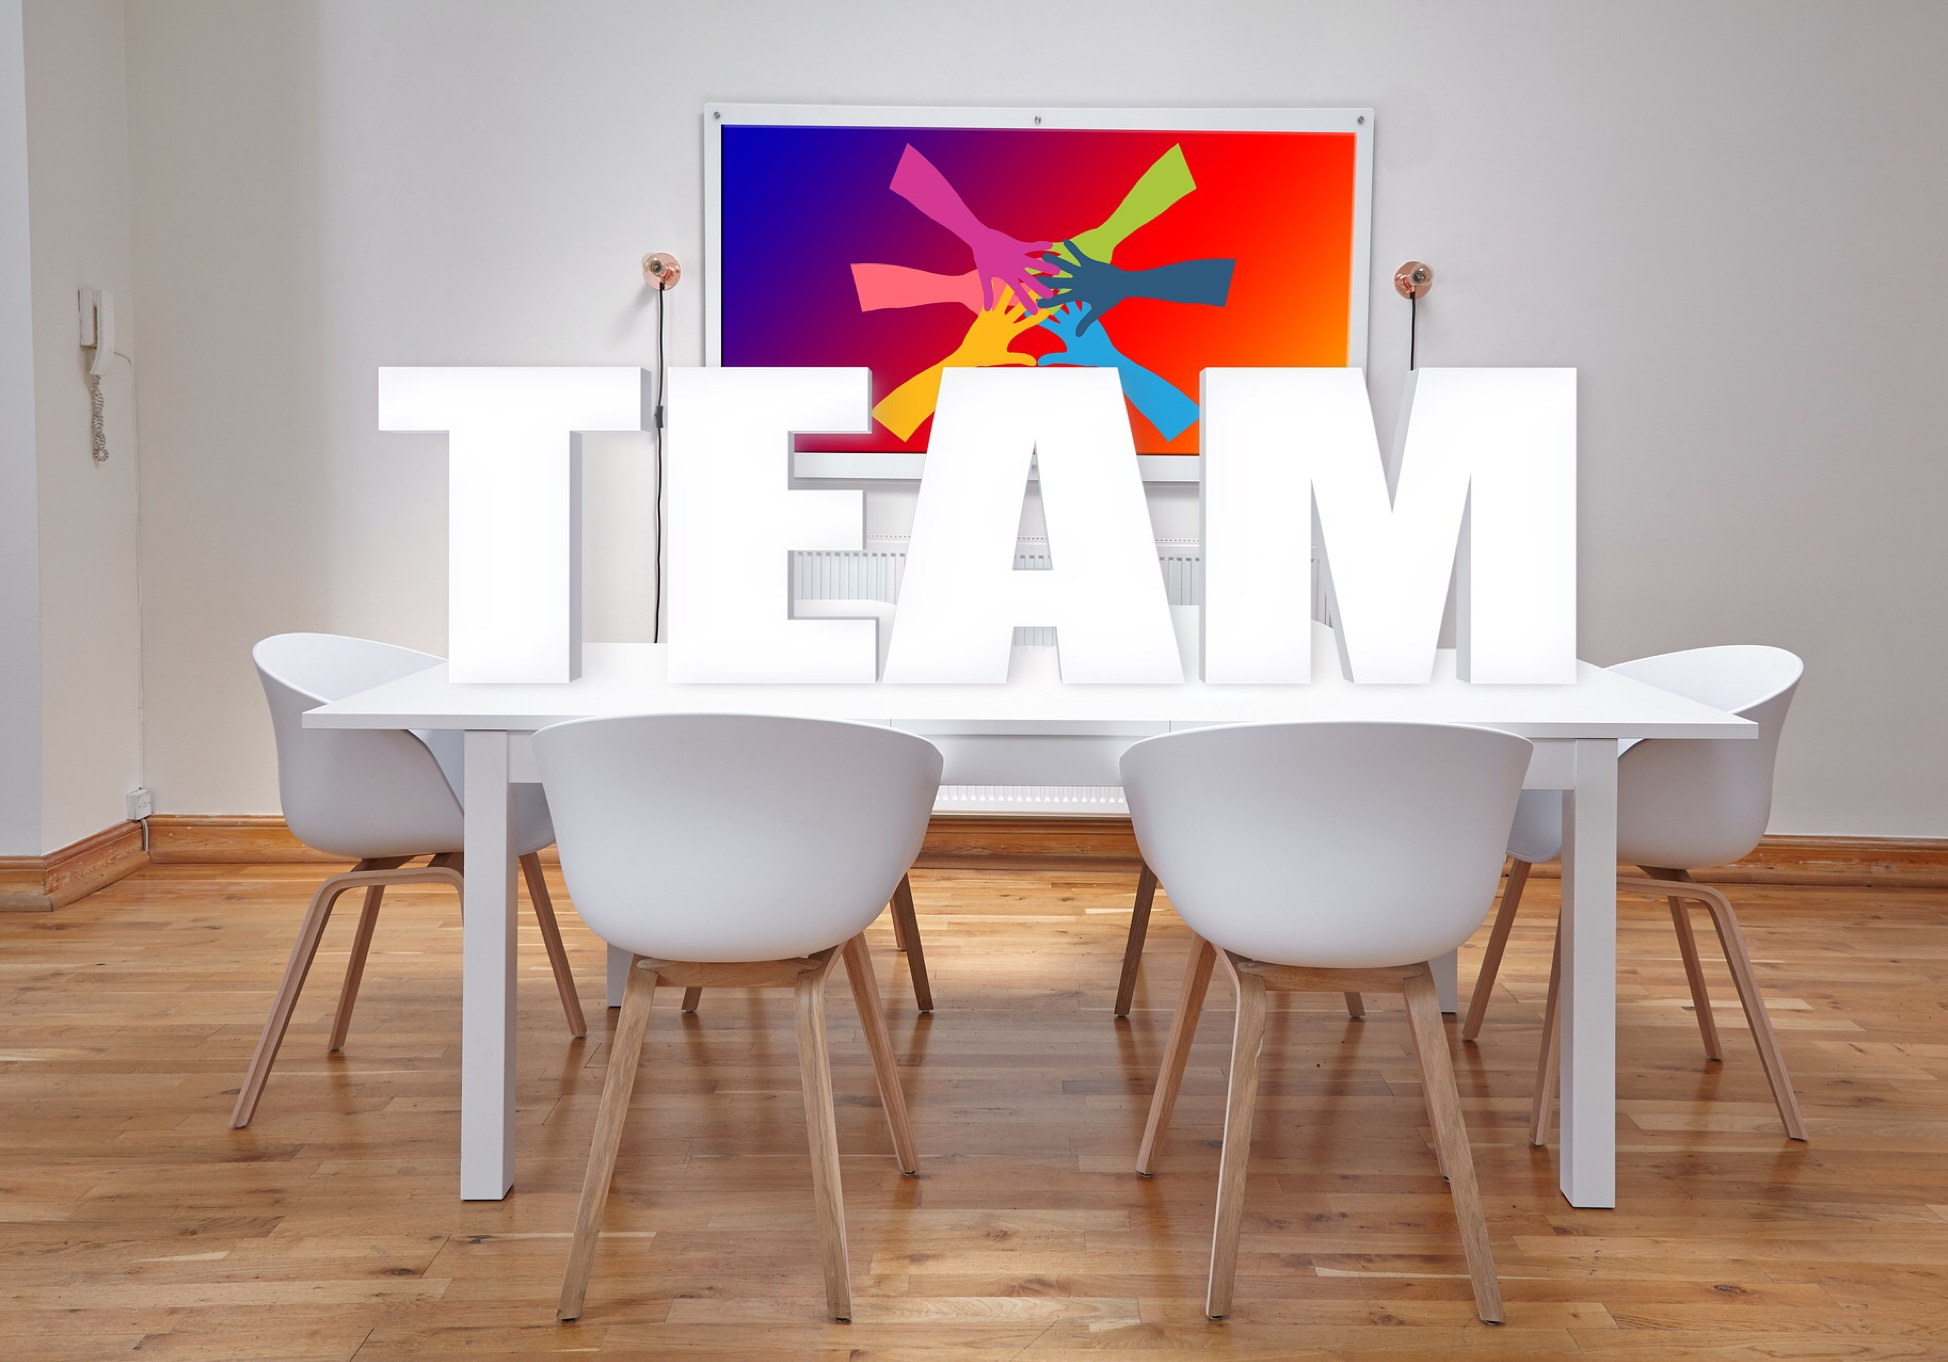 How to ... - IMPROVE: Team Innovation, problem solving, communication specifics & unity?With an increase in appreciation of different working styles, which enhances engagement and office energy